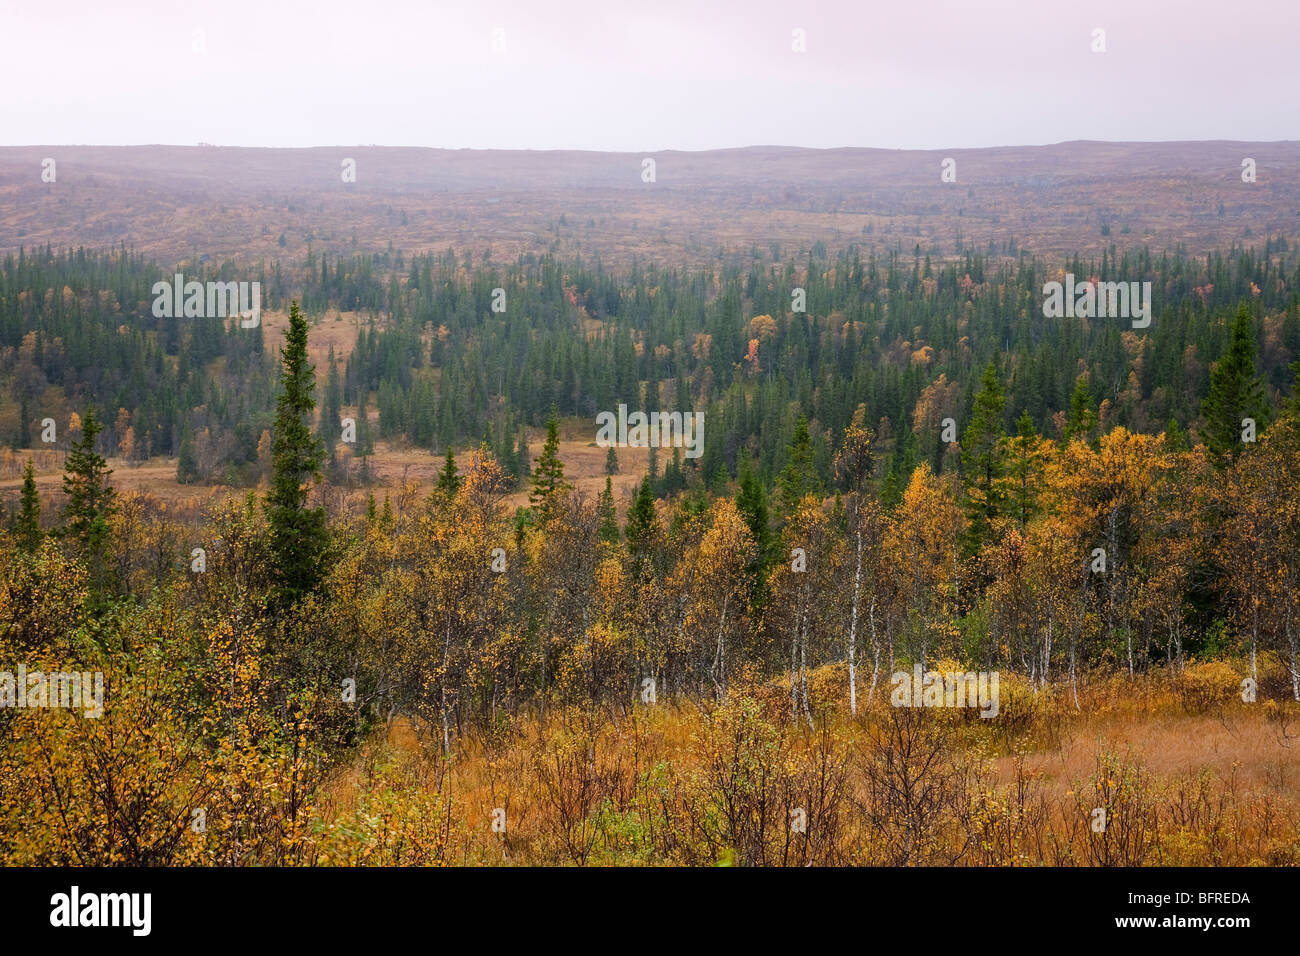 Mountain landscape with coniferous forest in autumn and autumn colours on birch trees Storlien jämtland Sweden - Stock Image